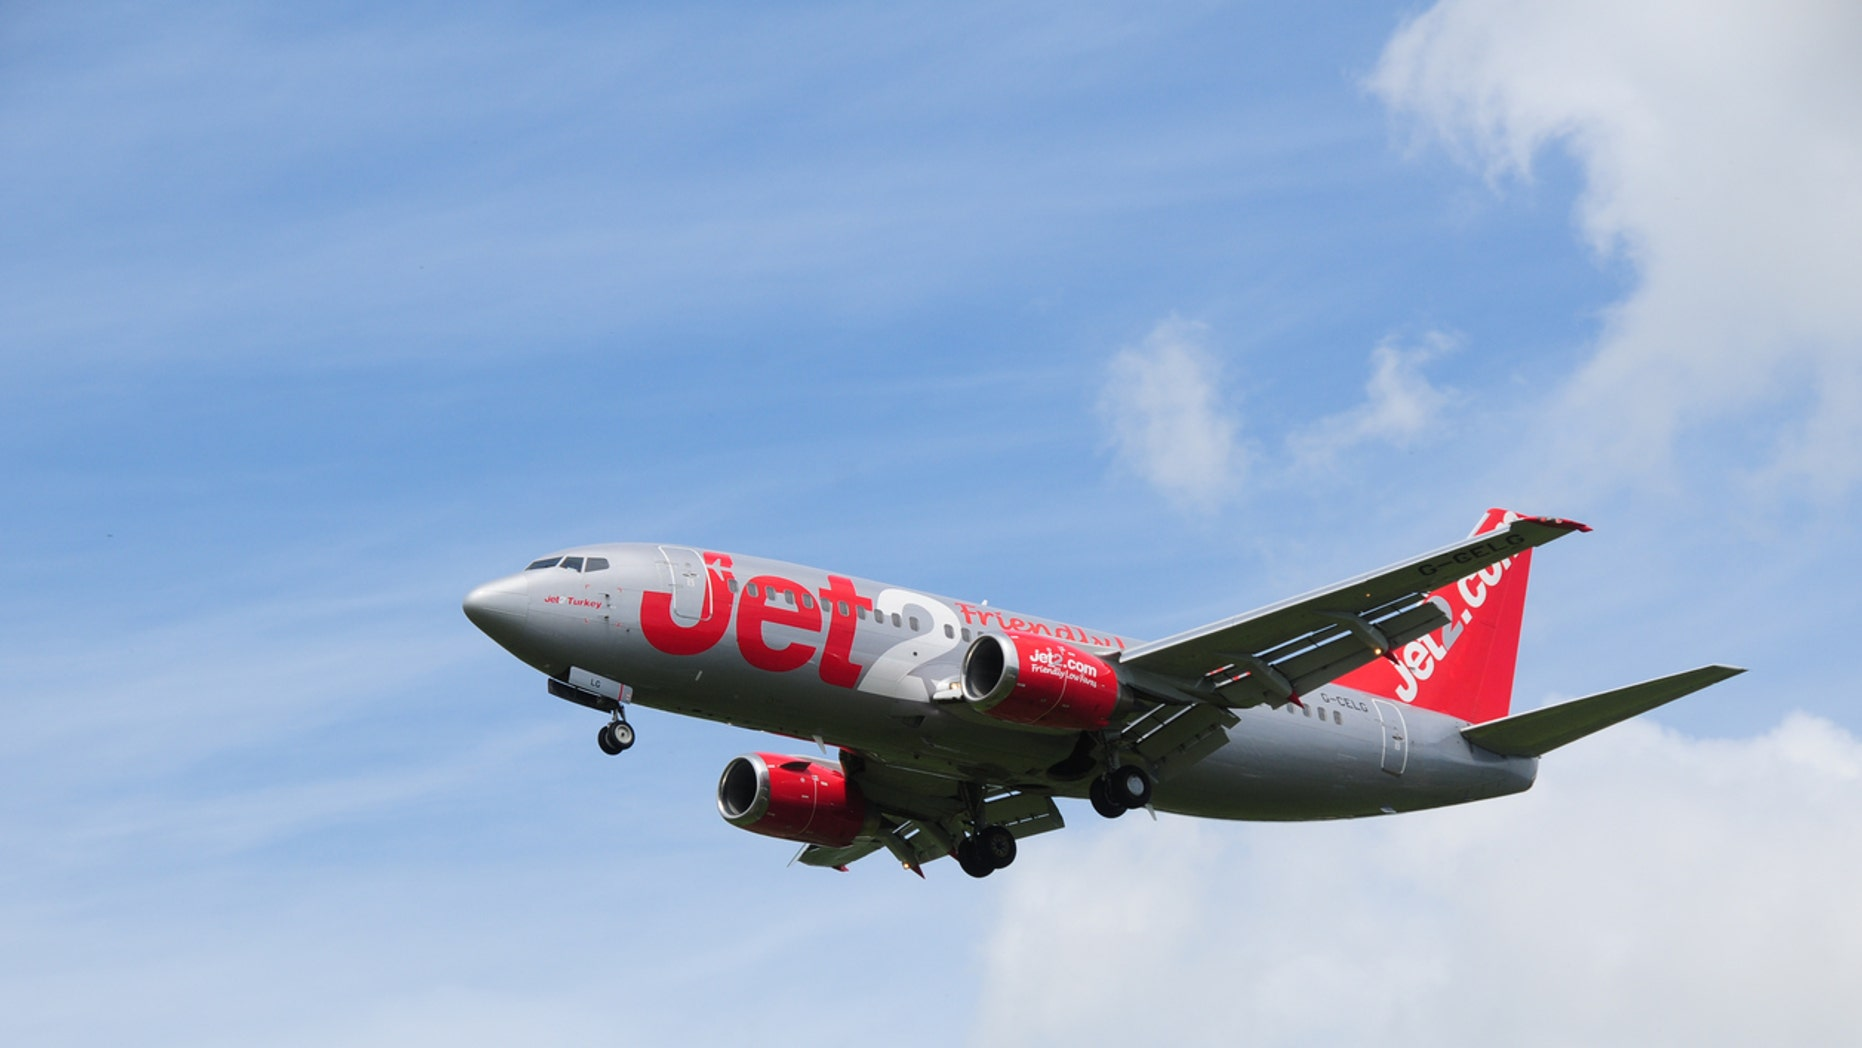 Cops searched the Jet2 plane and found a drawing of a bomb inside a toilet.